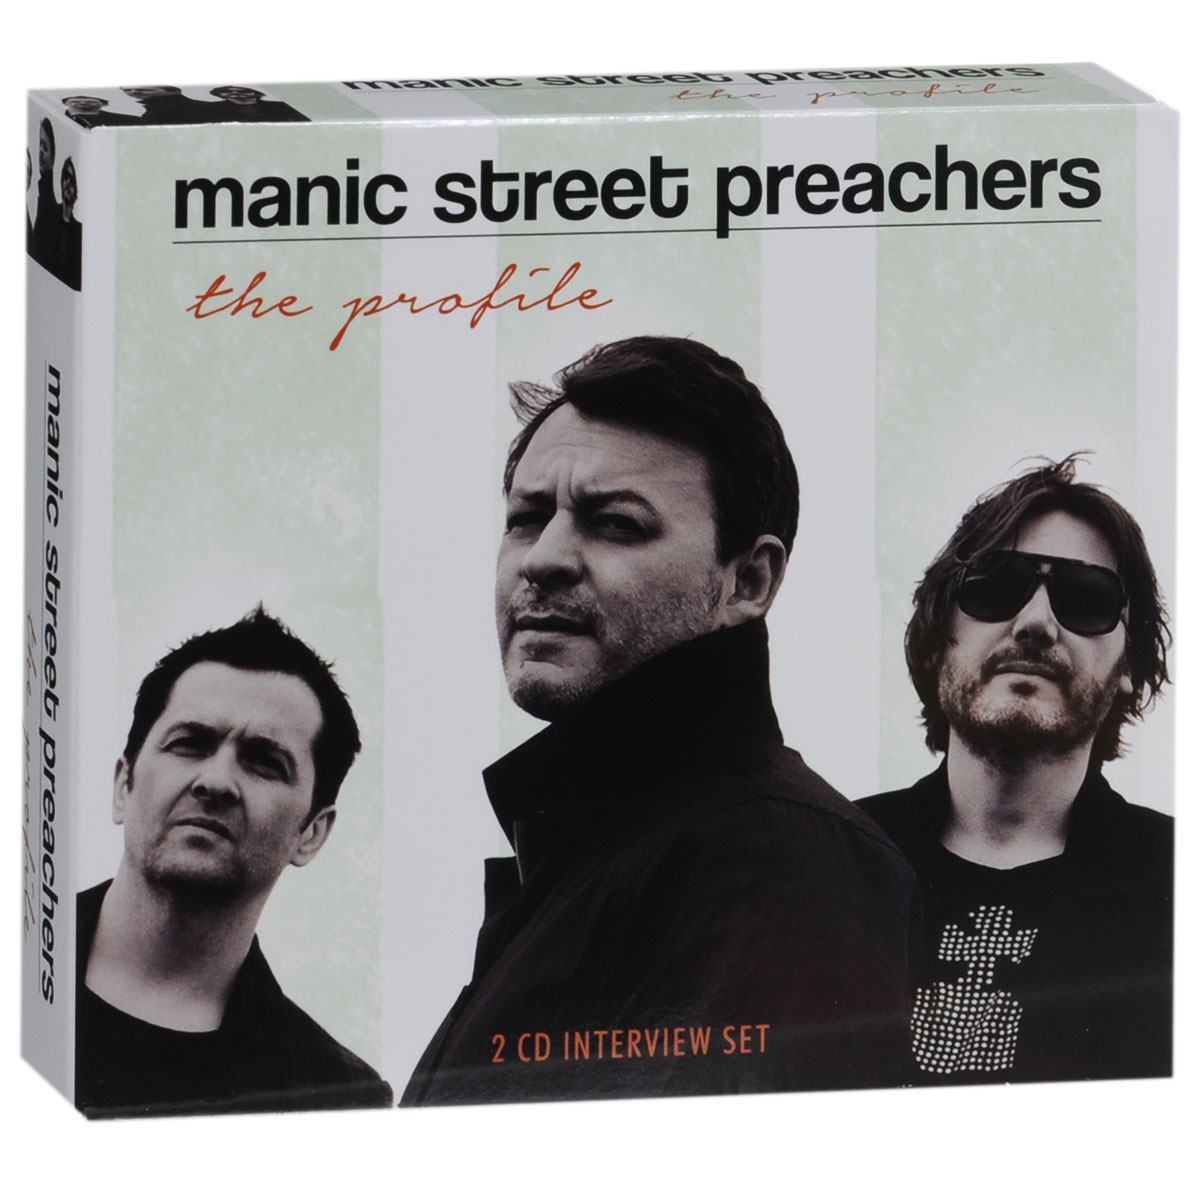 Manic Street Preachers Manic Street Preachers. The Profile (2 CD) manic street preachers manic street preachers the profile 2 cd